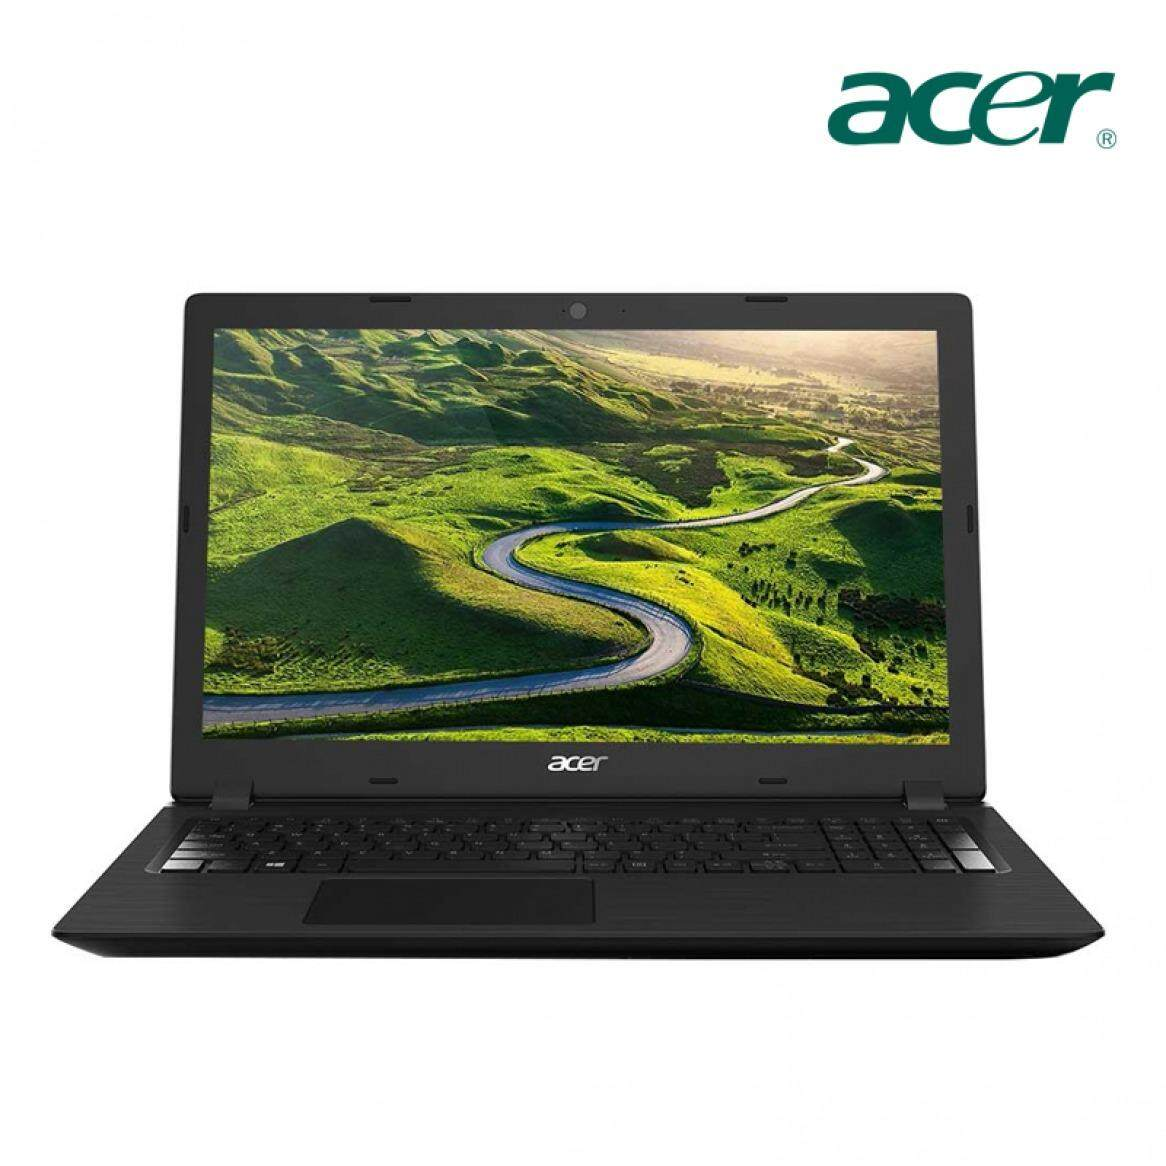 ราคา Acer Notebook Aspire 3 A315 21 61D1 Nx Gnvst 008 Amd A6 9220 4Gb 1Tb Integrated 15 6 Inch Hd Linux Black ใหม่ ถูก